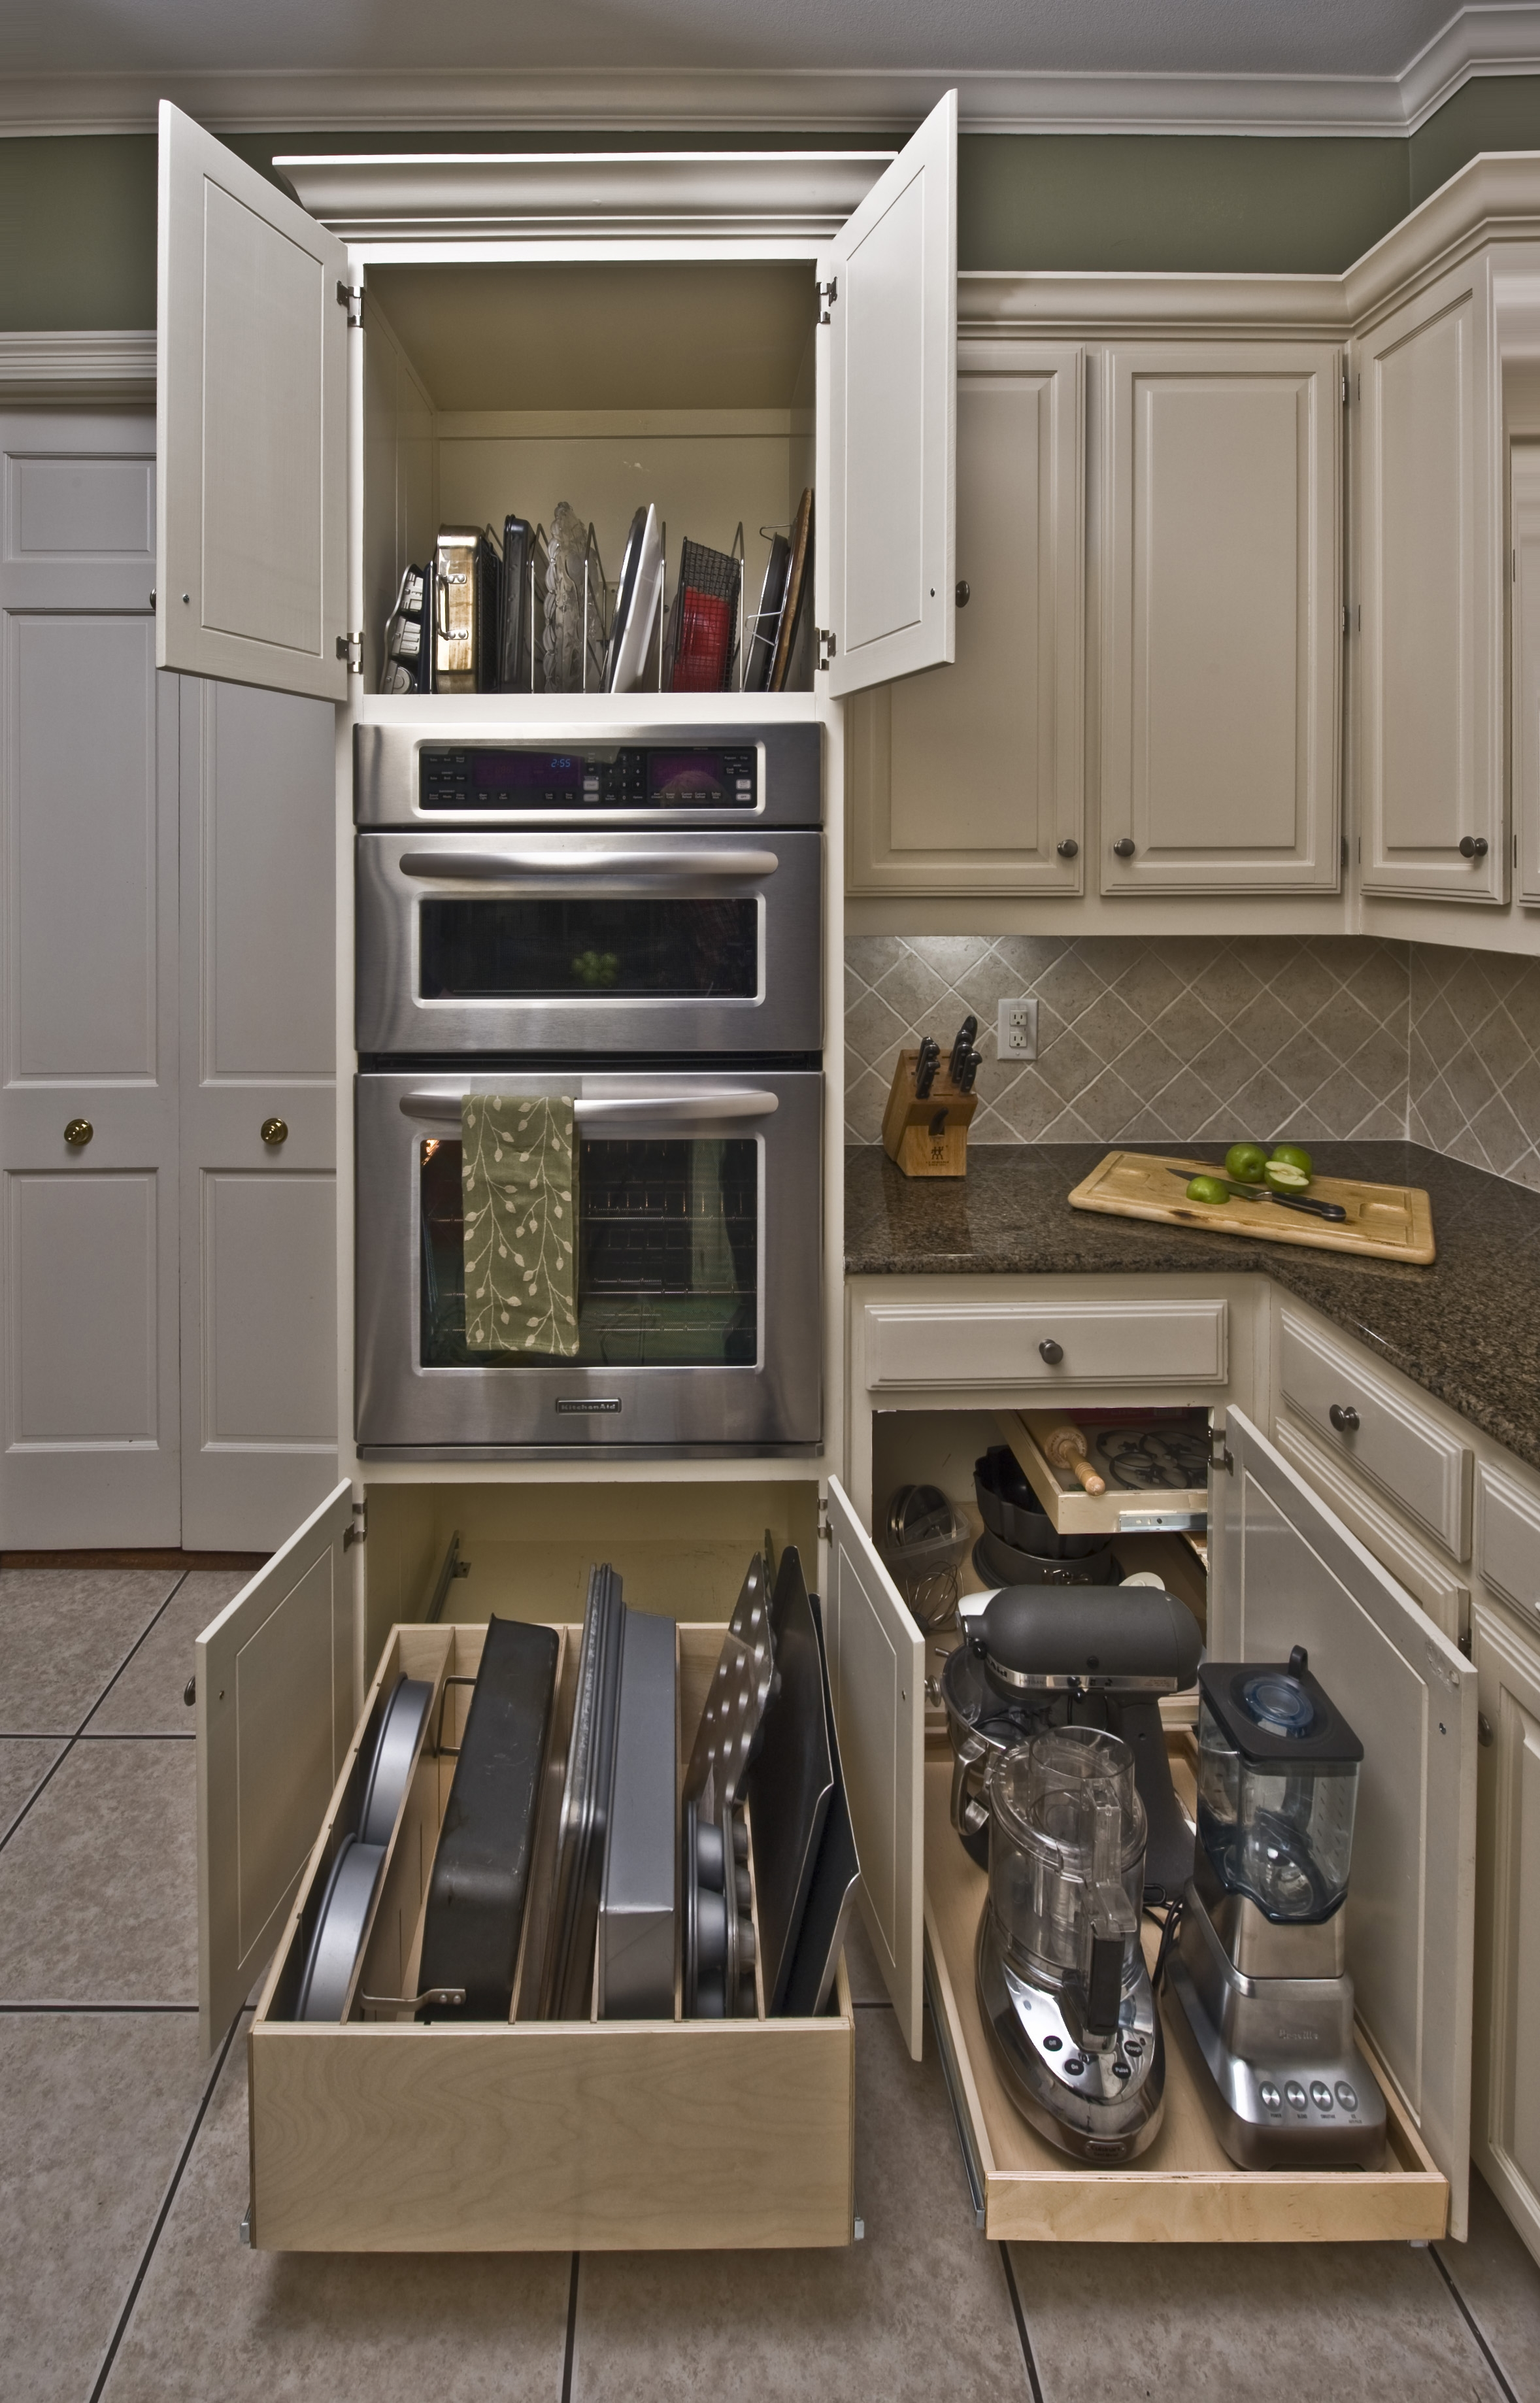 Permalink to Kitchen Cupboards Storage Shelves